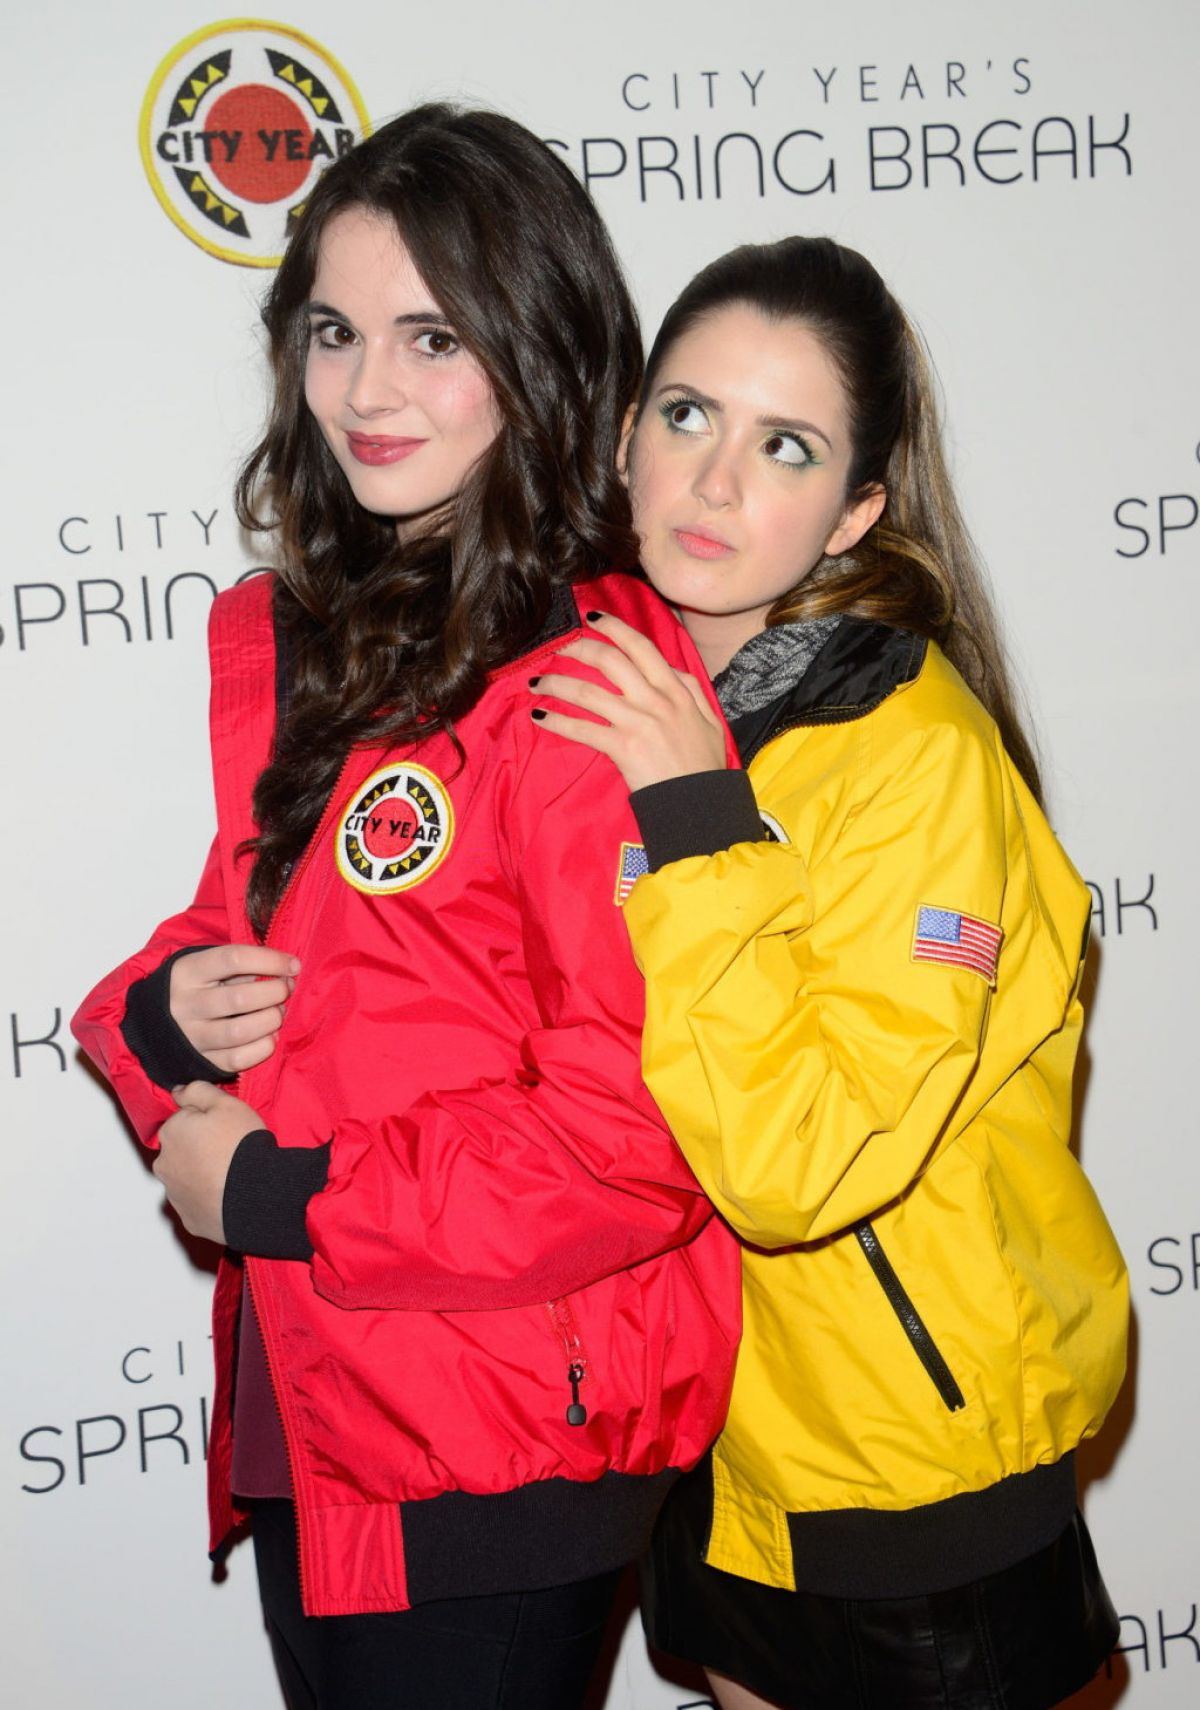 VANESSA and LAURA MARANO at City Year Los Angeles Spring Break in Los Angeles